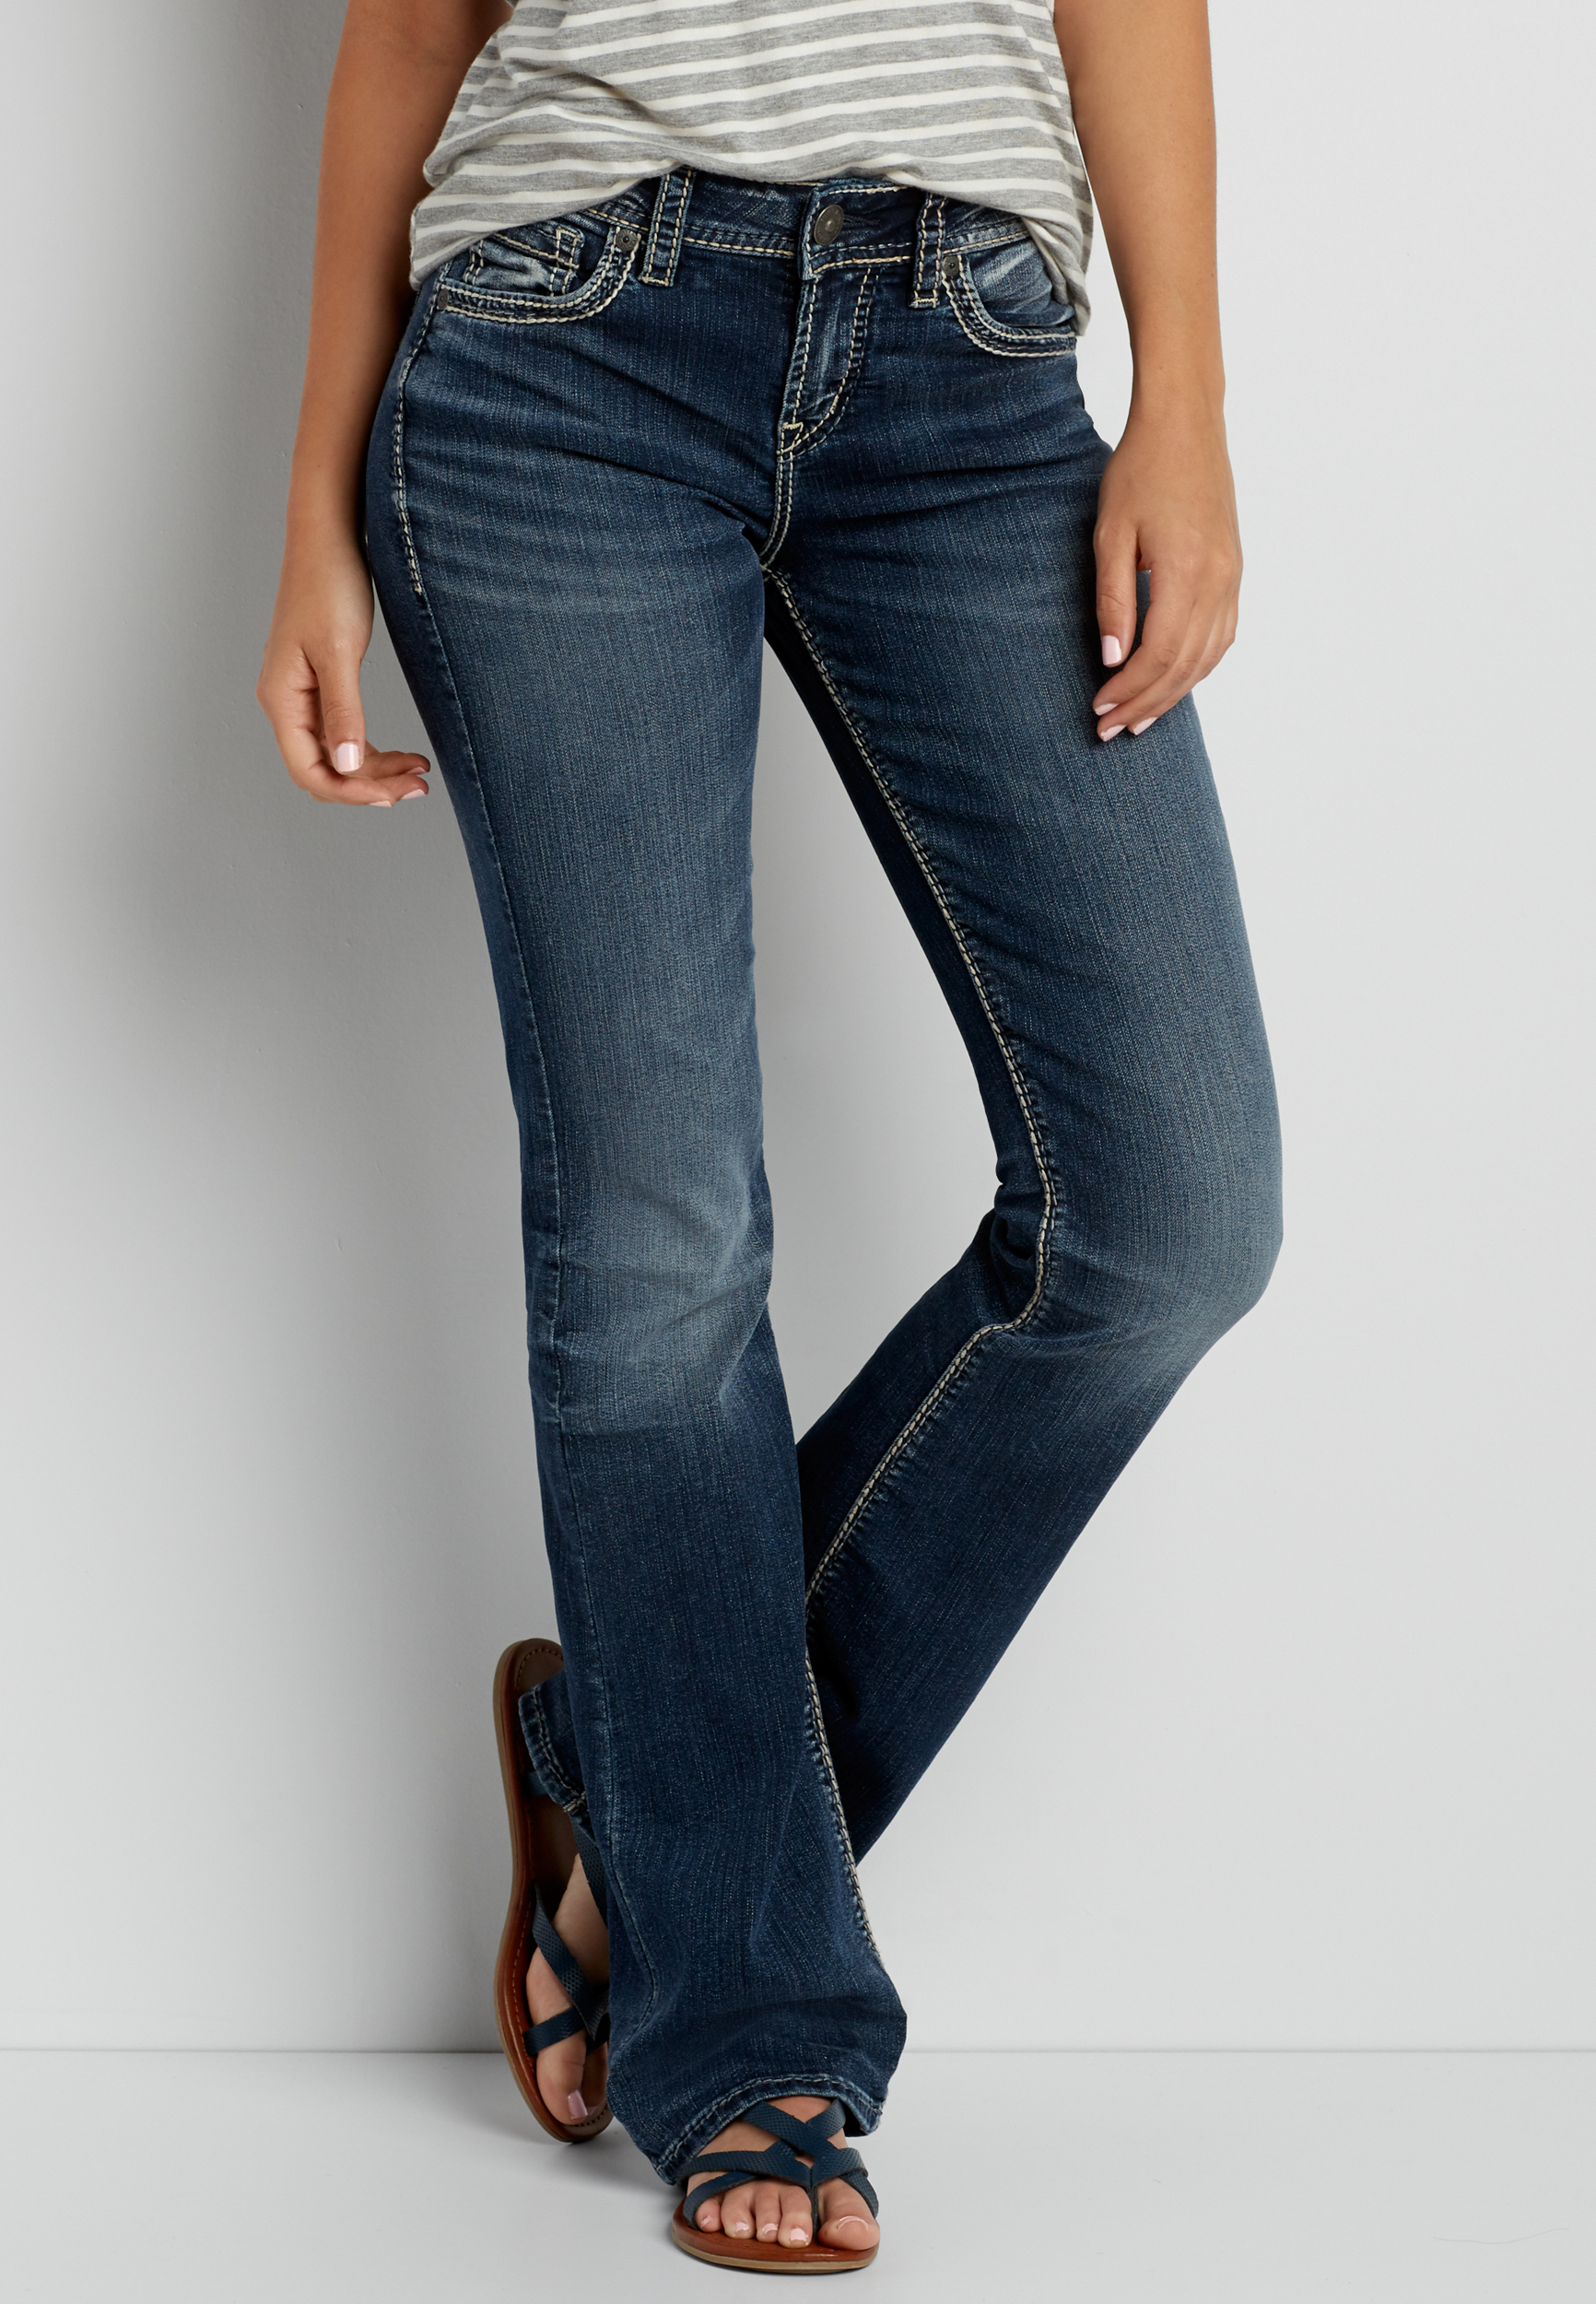 Silver Jeans Company | Suki, Aiko, & More | Jeans for Women | maurices